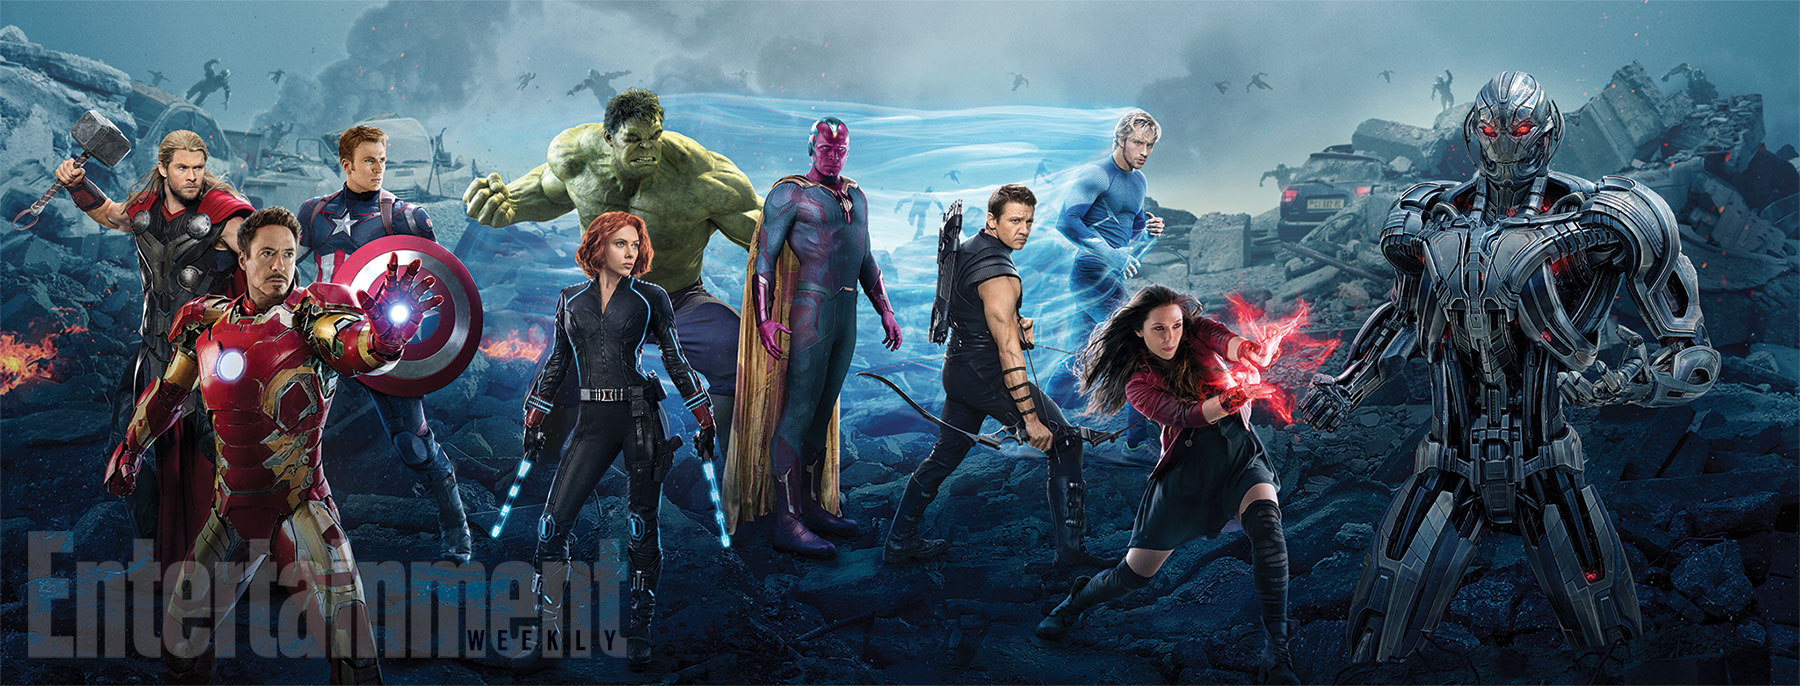 Avengers: Age of Ultron - Il banner realizzato per Entertainment Weekly